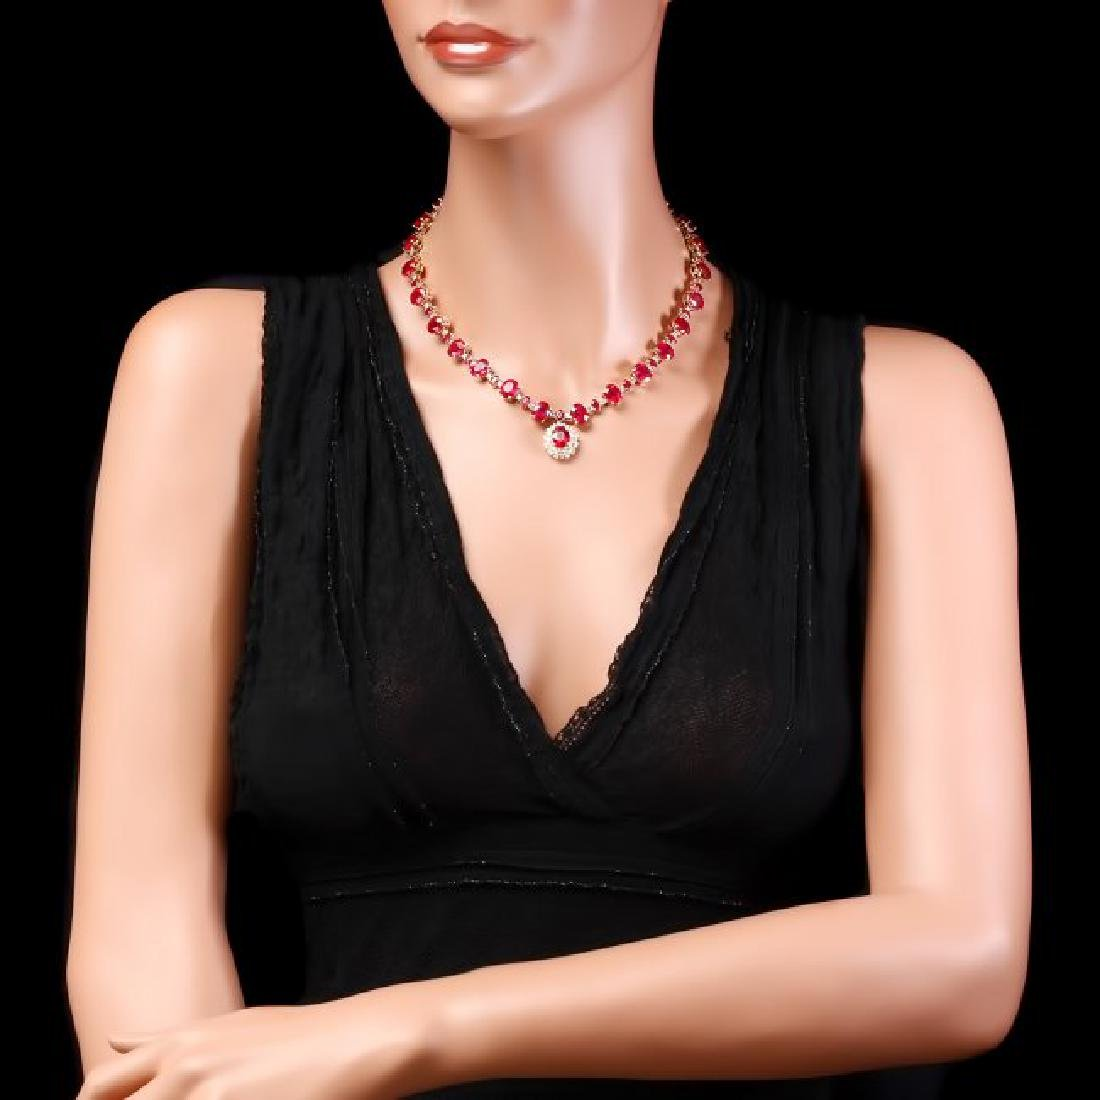 14k Gold 72.00ct Ruby 1.30ct Diamond Necklace - 5